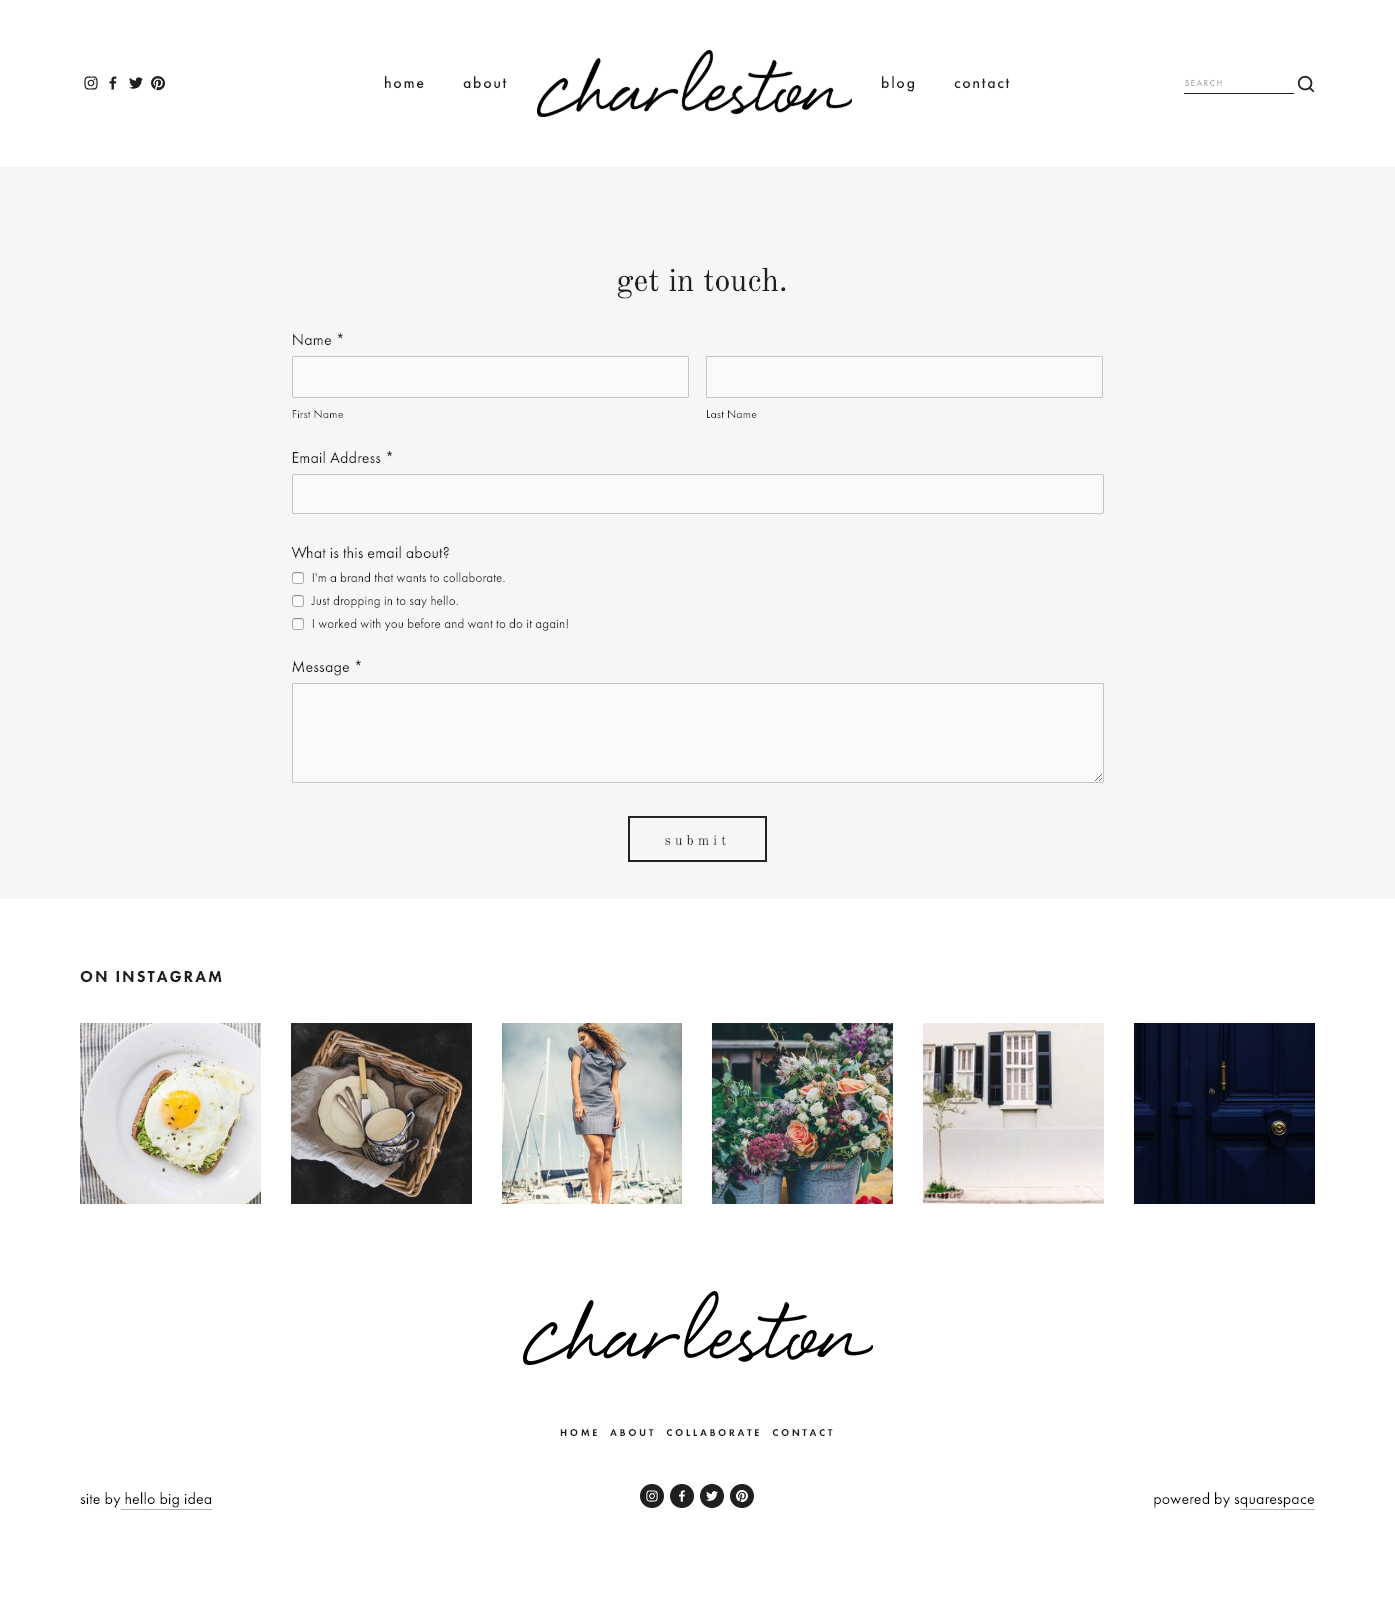 screencapture-hellocharleston-squarespace-contact-2018-12-30-20_57_35.png